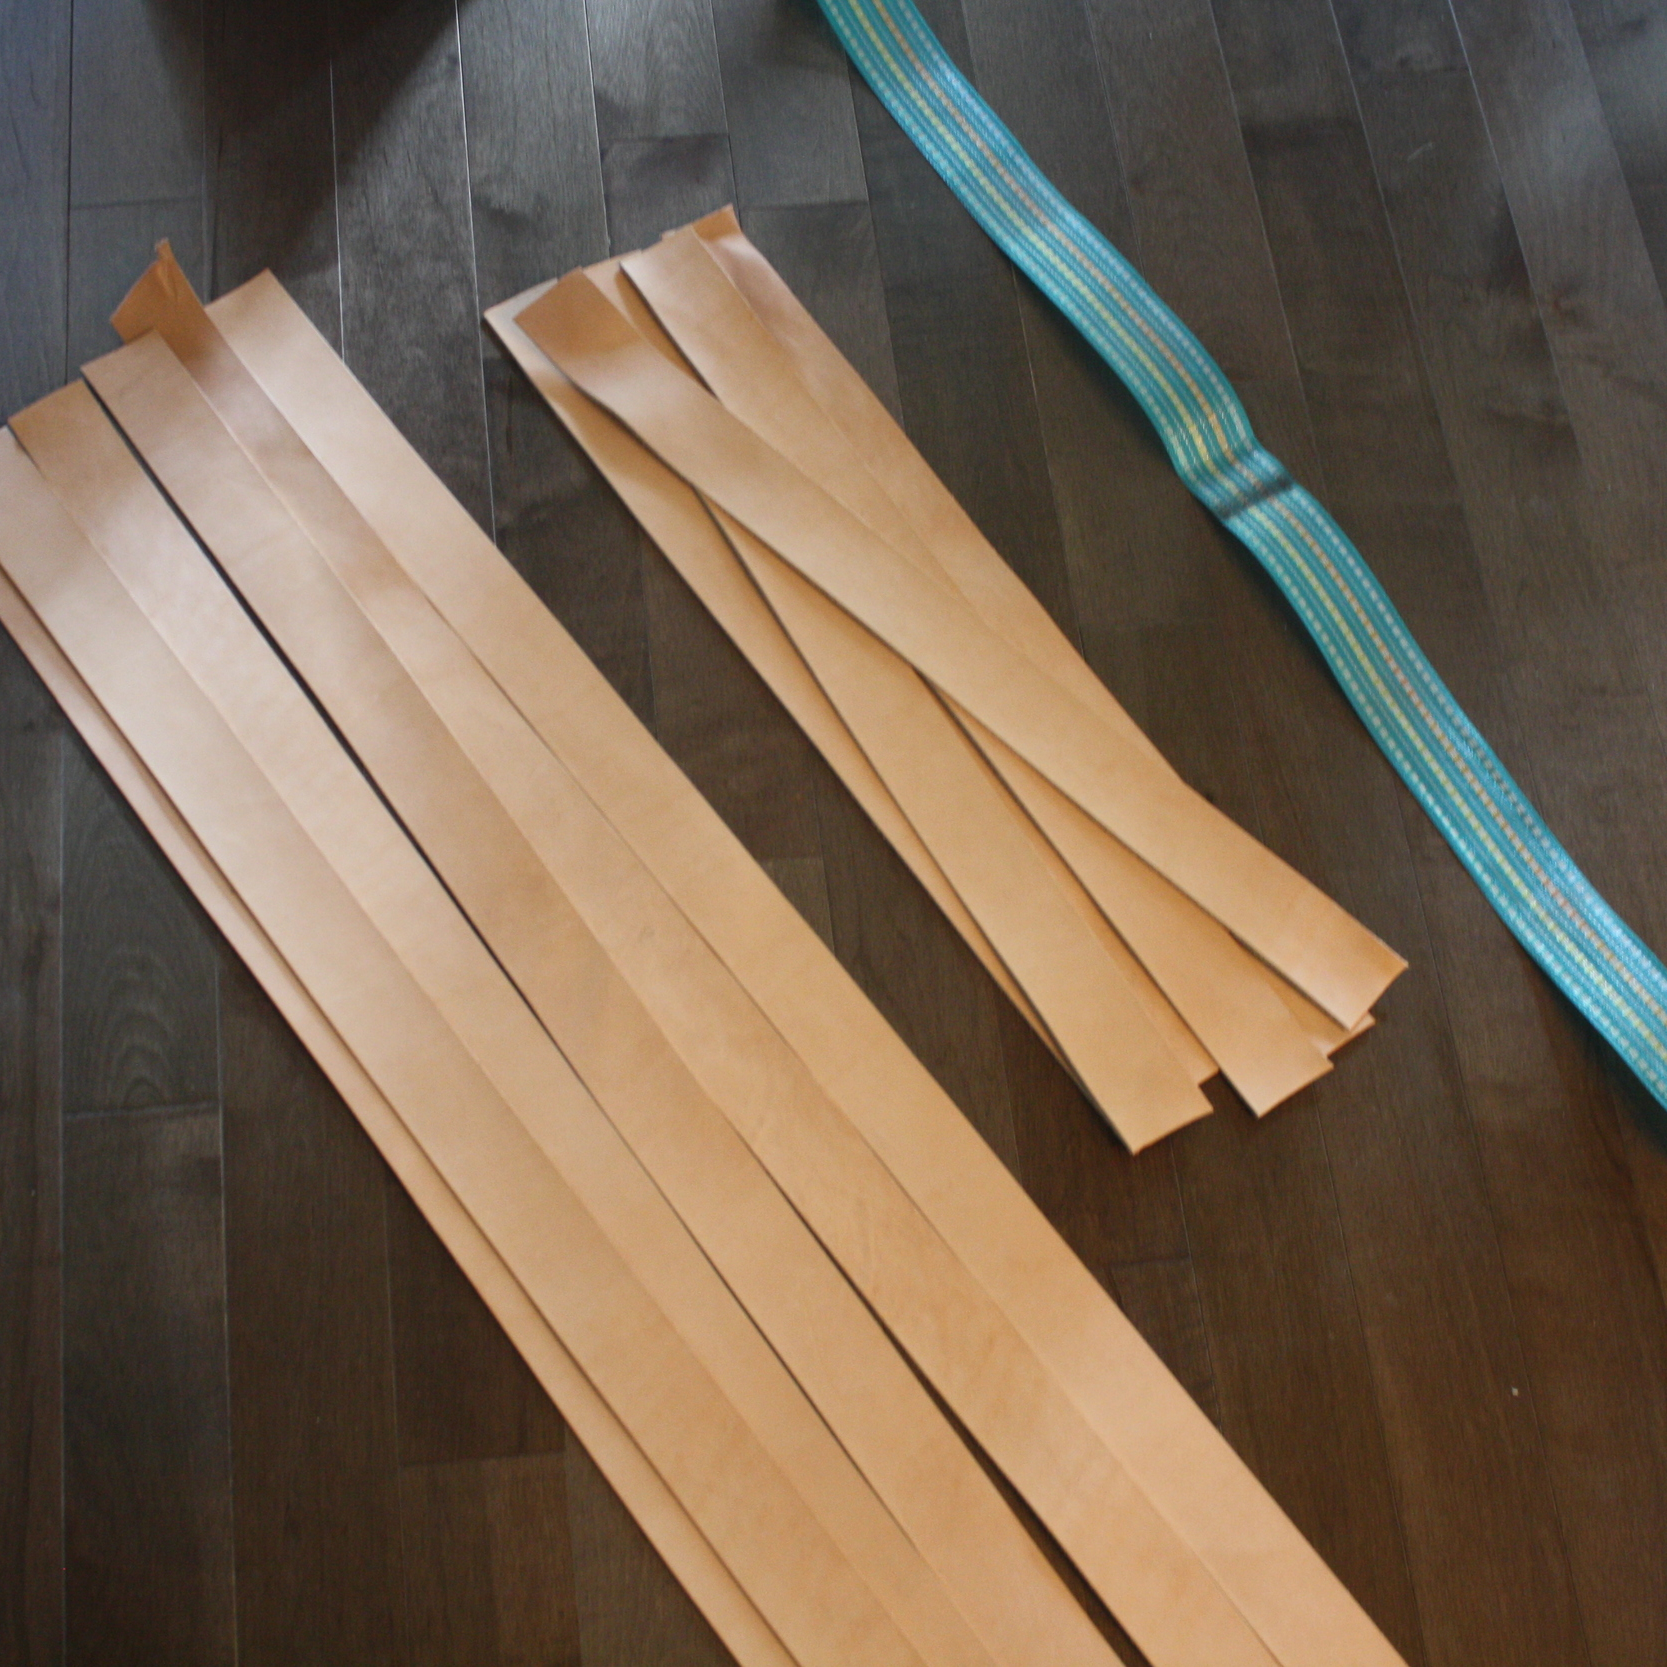 Using a strip as a template, cut your leather strips - give an inch of extra room just in case.